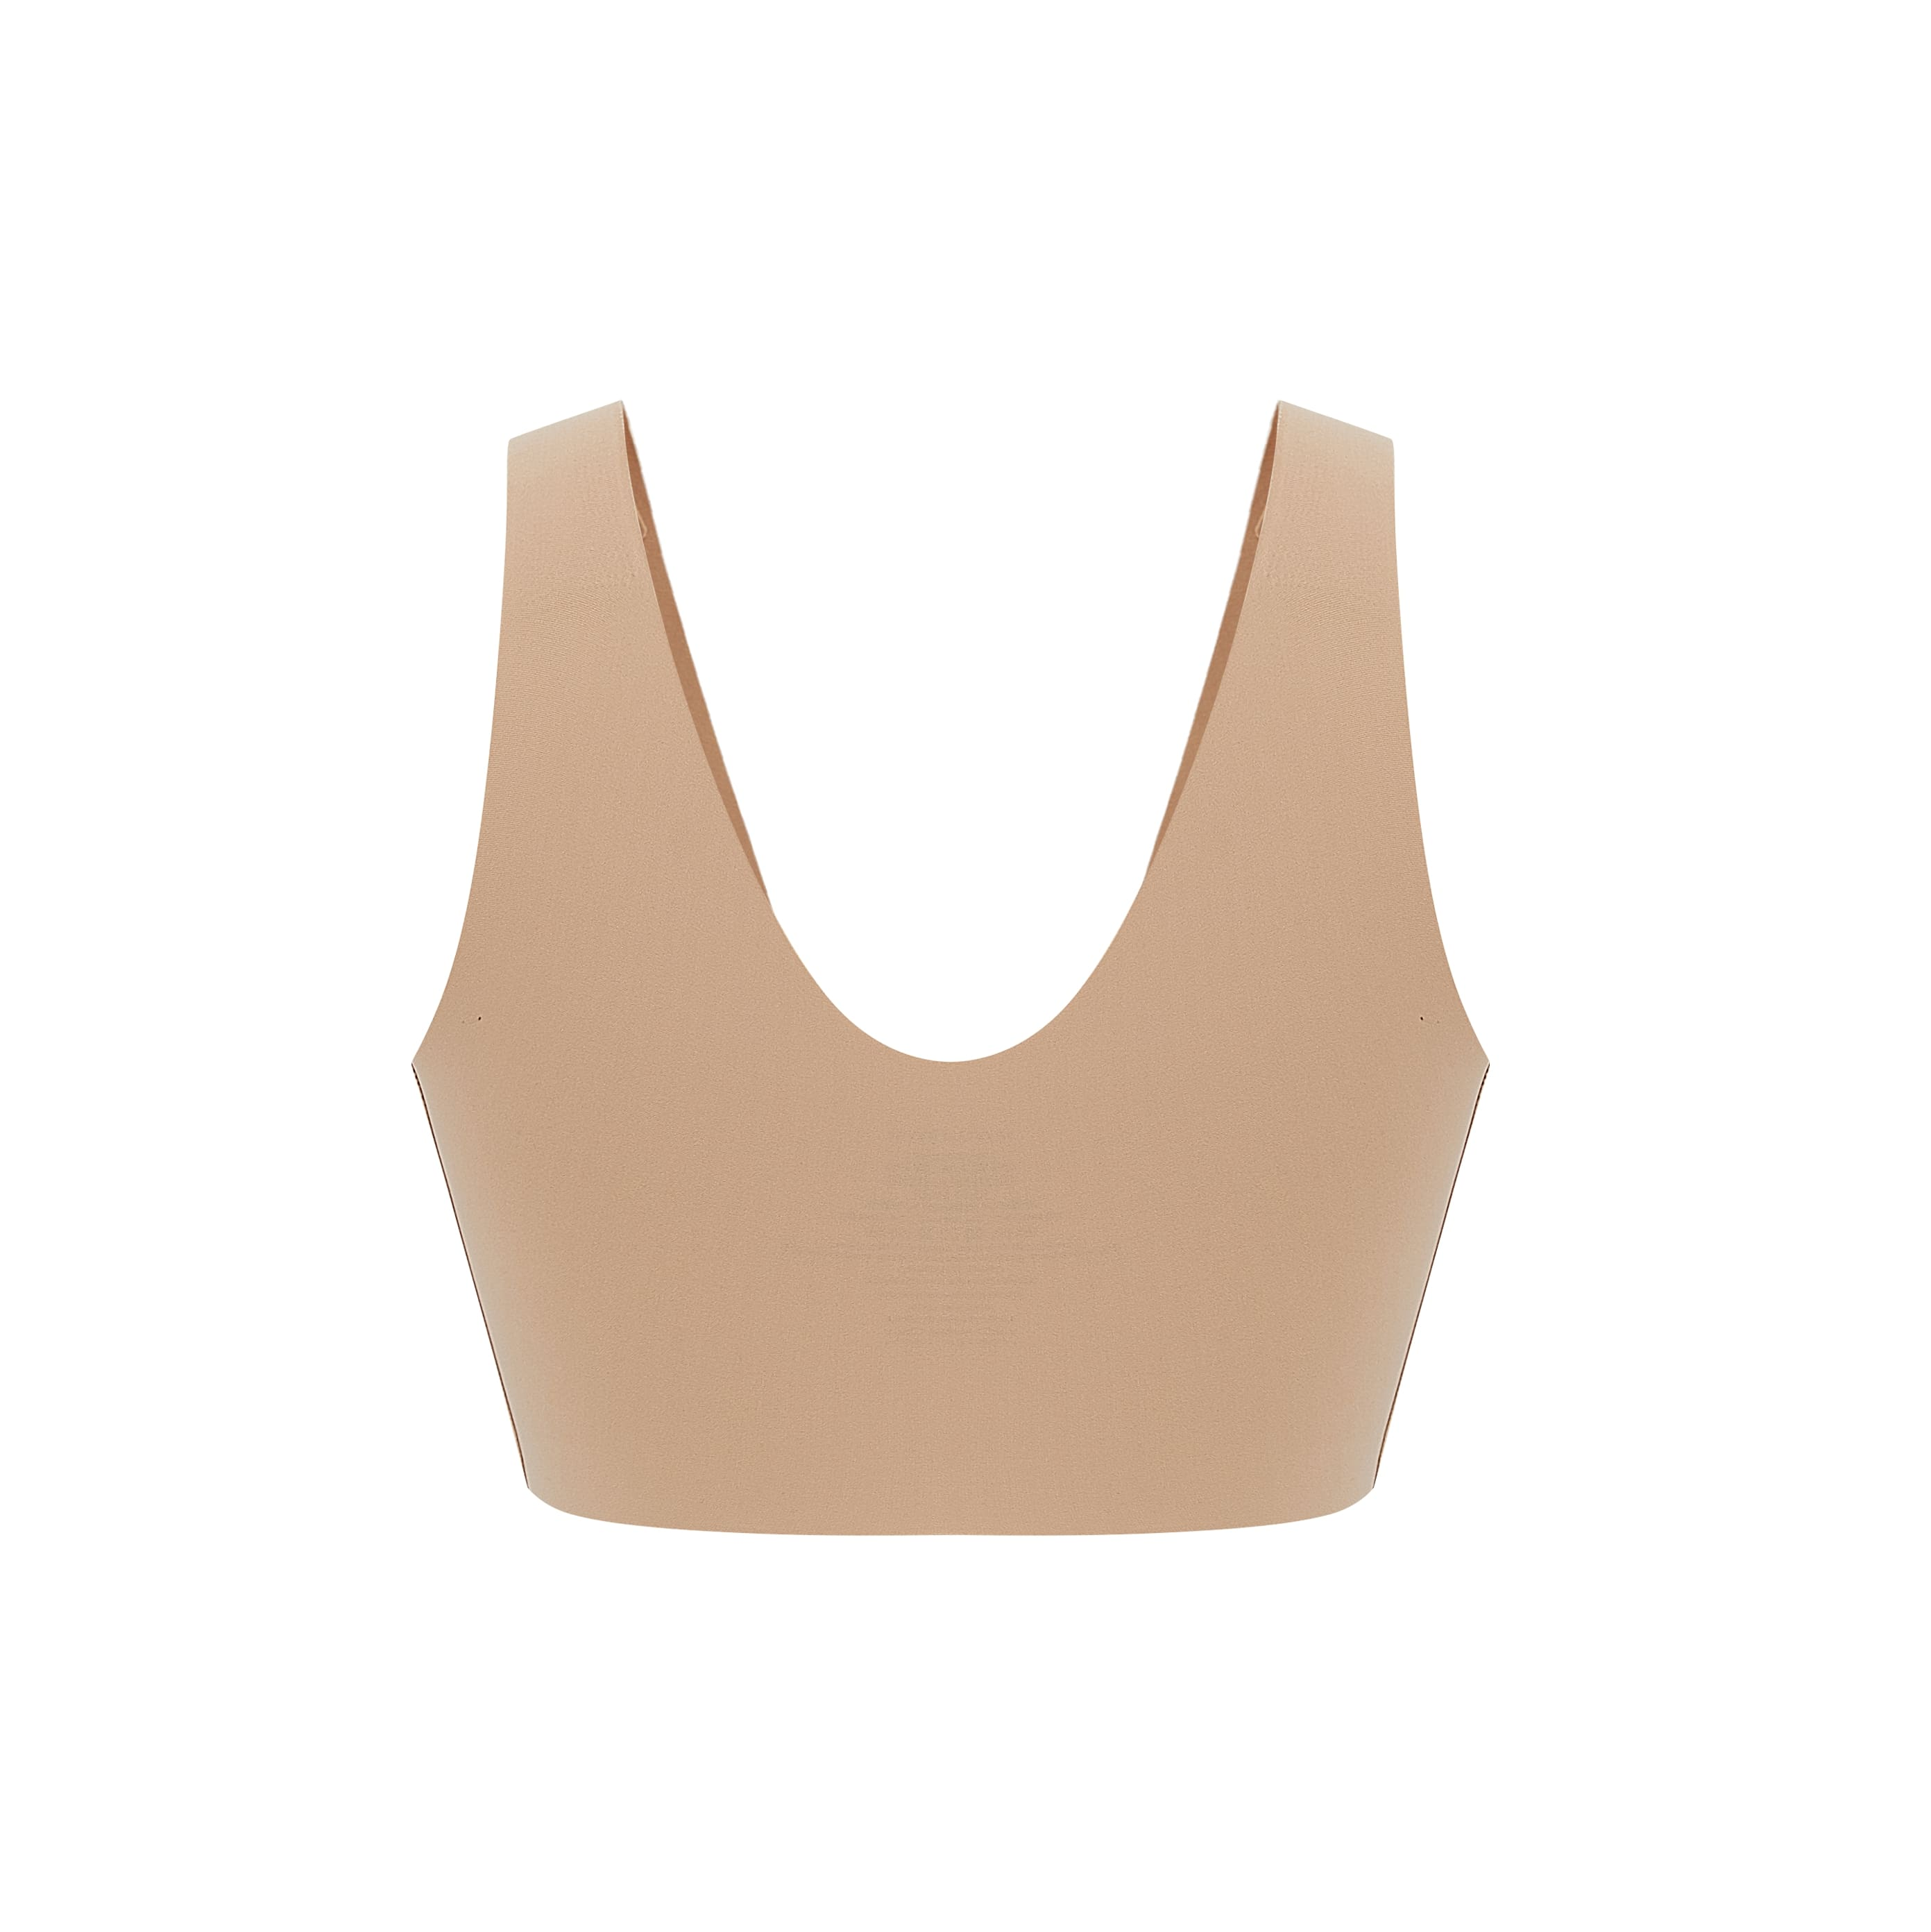 2021 Barely Zero® Your-Size-Is-The-Size Classic Wireless Bra